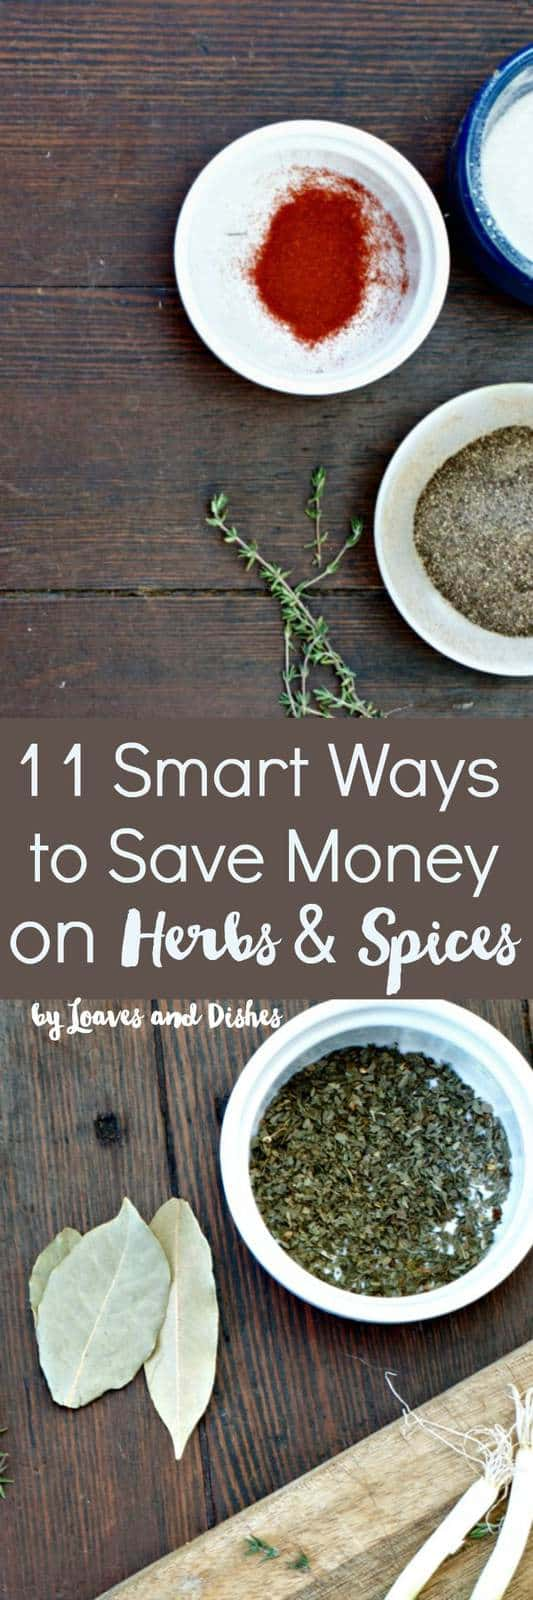 This post gives you tips and tricks about saving money on herbs and spices simple every day hacks!